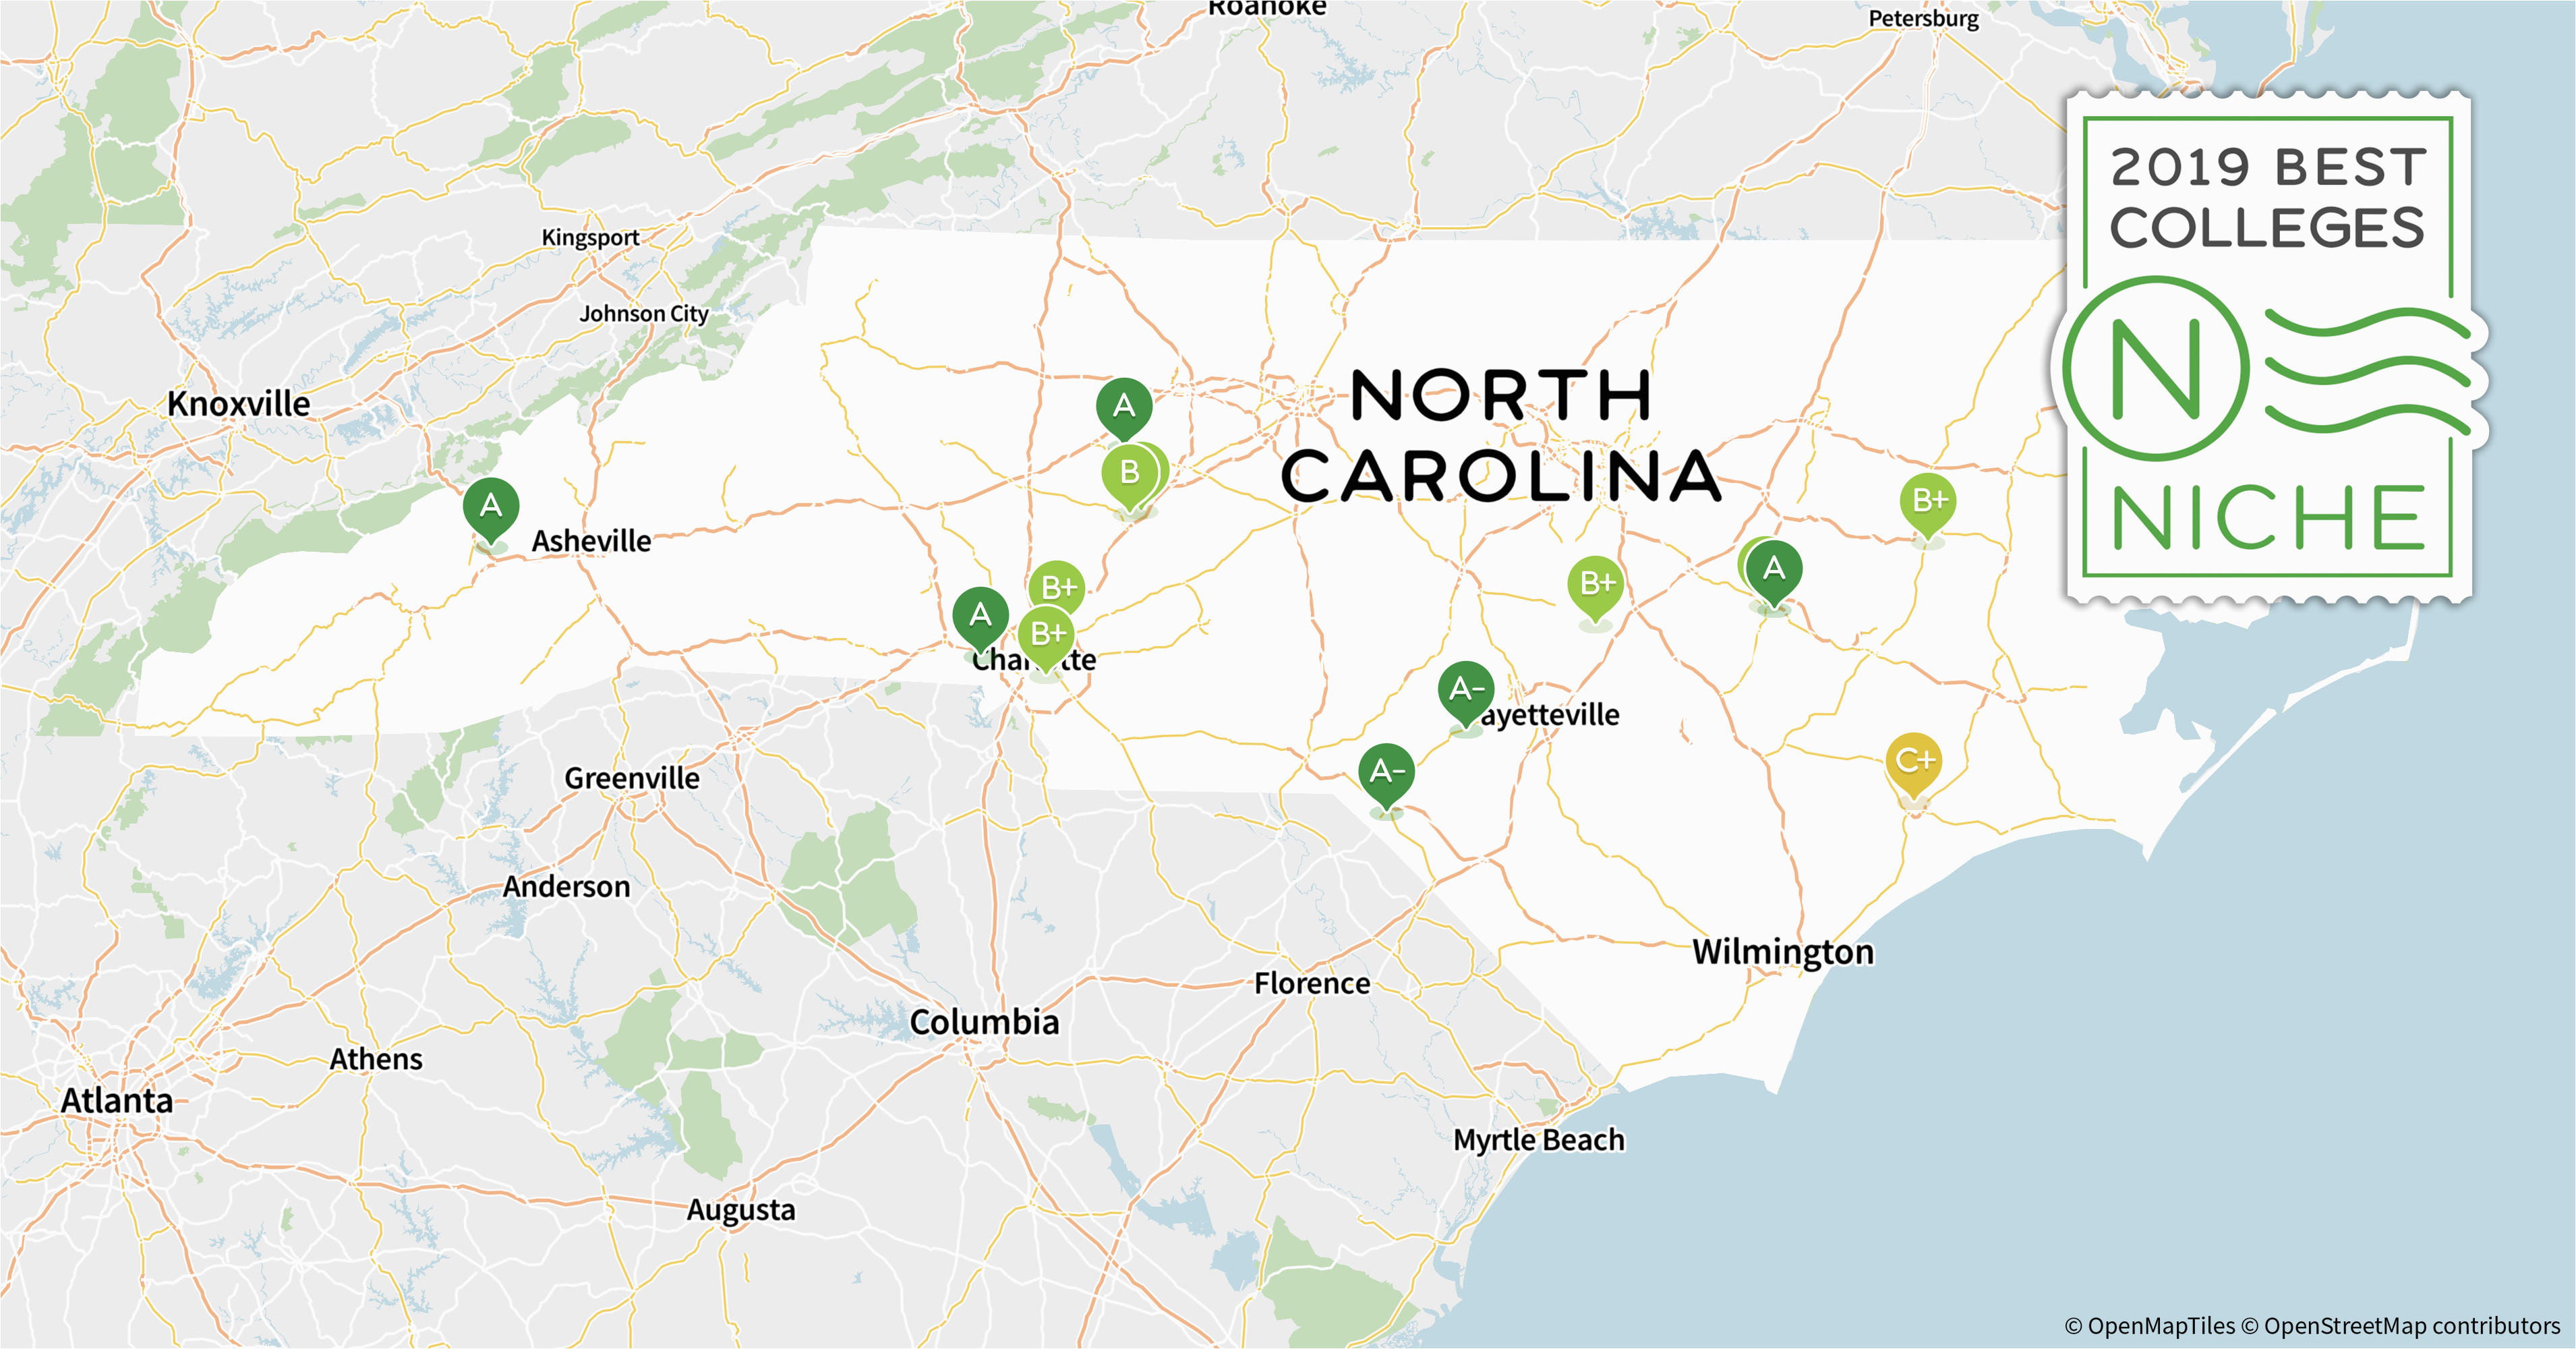 Law Schools In North Carolina >> Law Schools In California Map 2019 Best Colleges In North